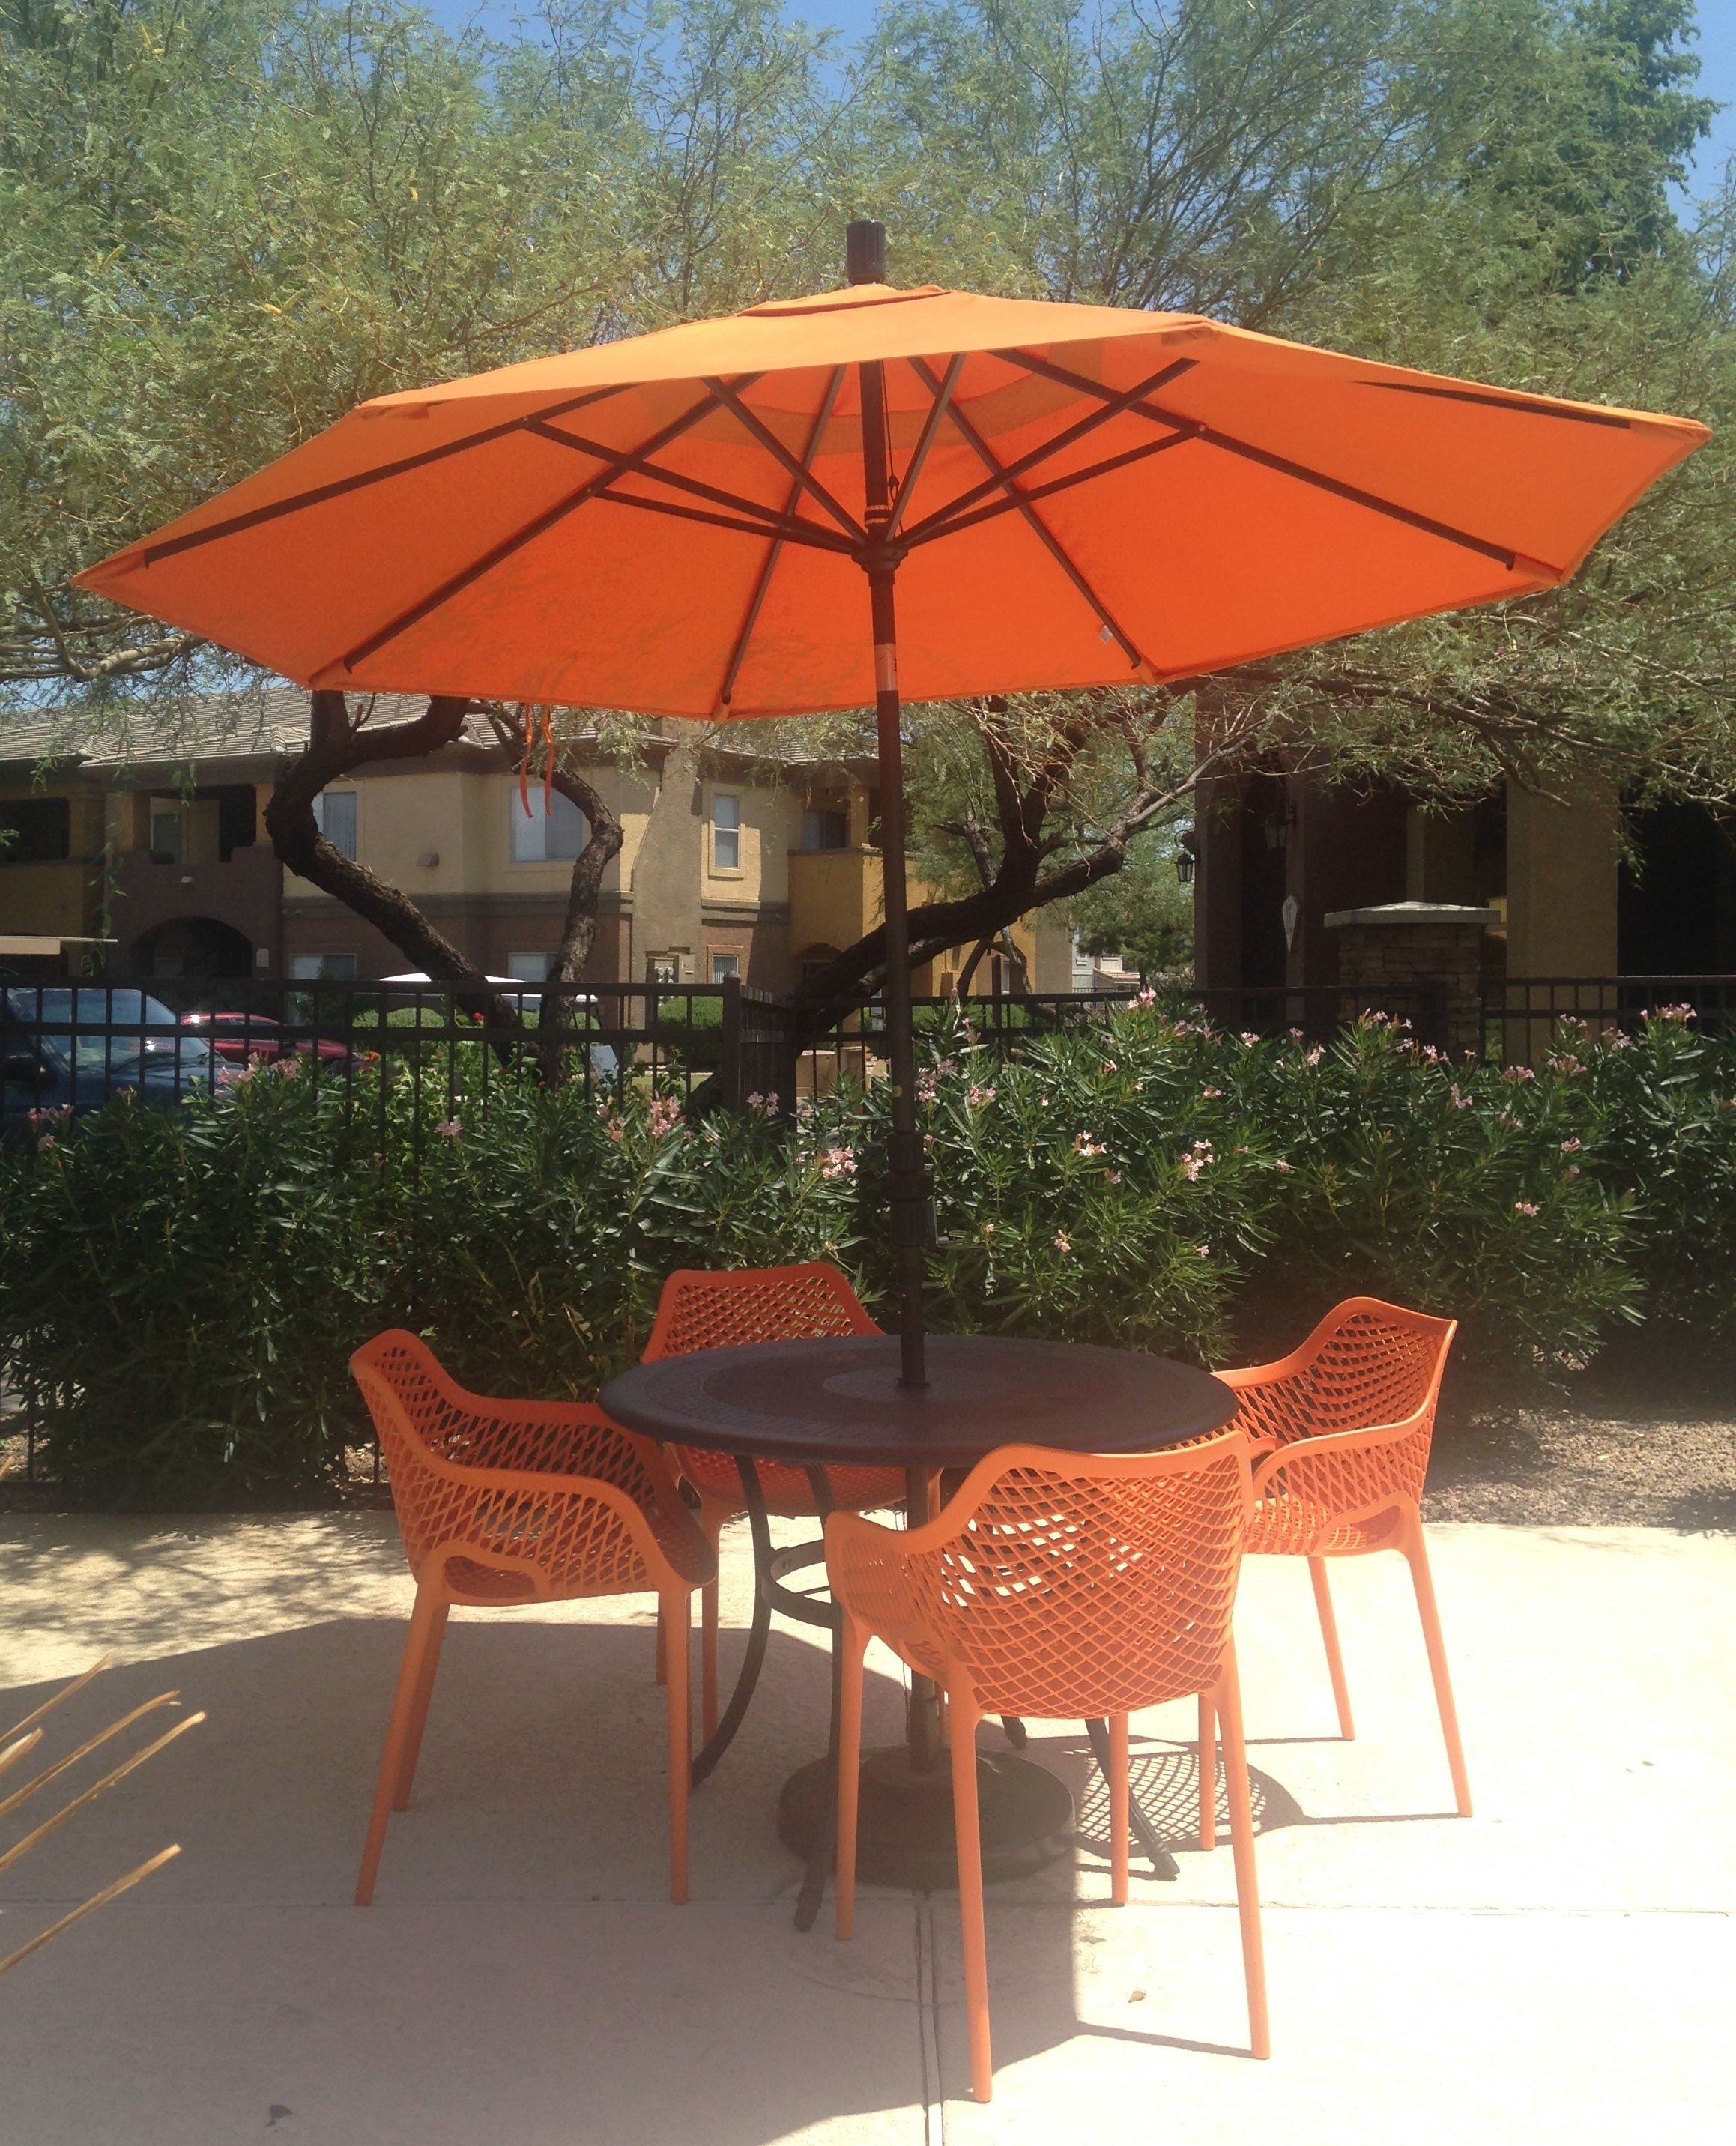 Photo Of Target Patio Umbrella Exterior Orange Target Patio Regarding Preferred Target Patio Umbrellas (View 7 of 20)